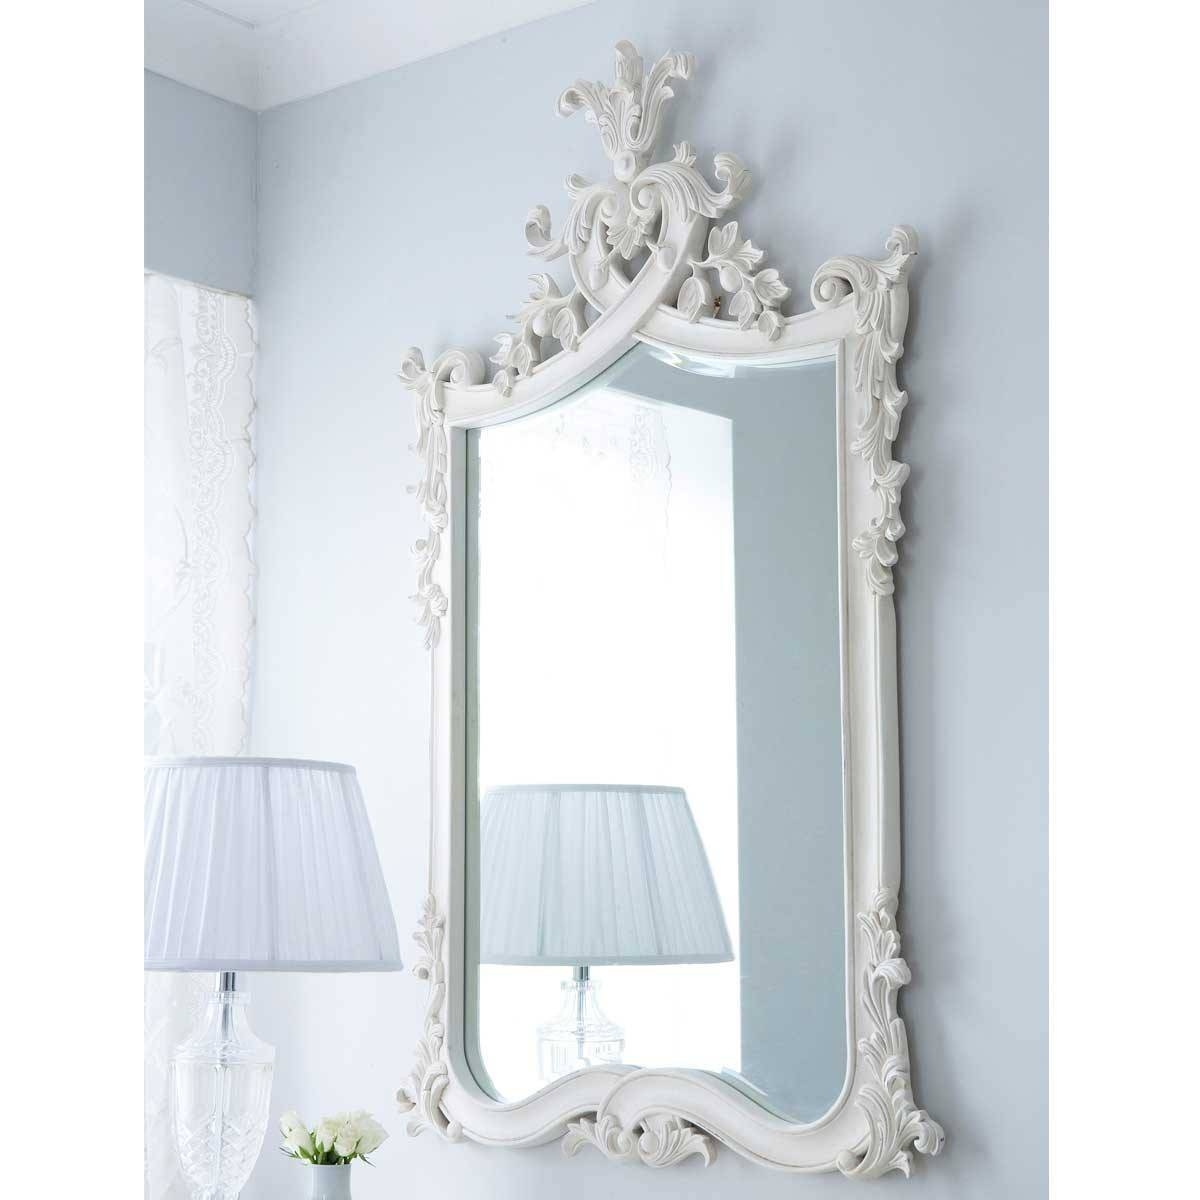 Provencal Heart Top White Mirror | Luxury Mirror throughout White French Mirrors (Image 19 of 25)